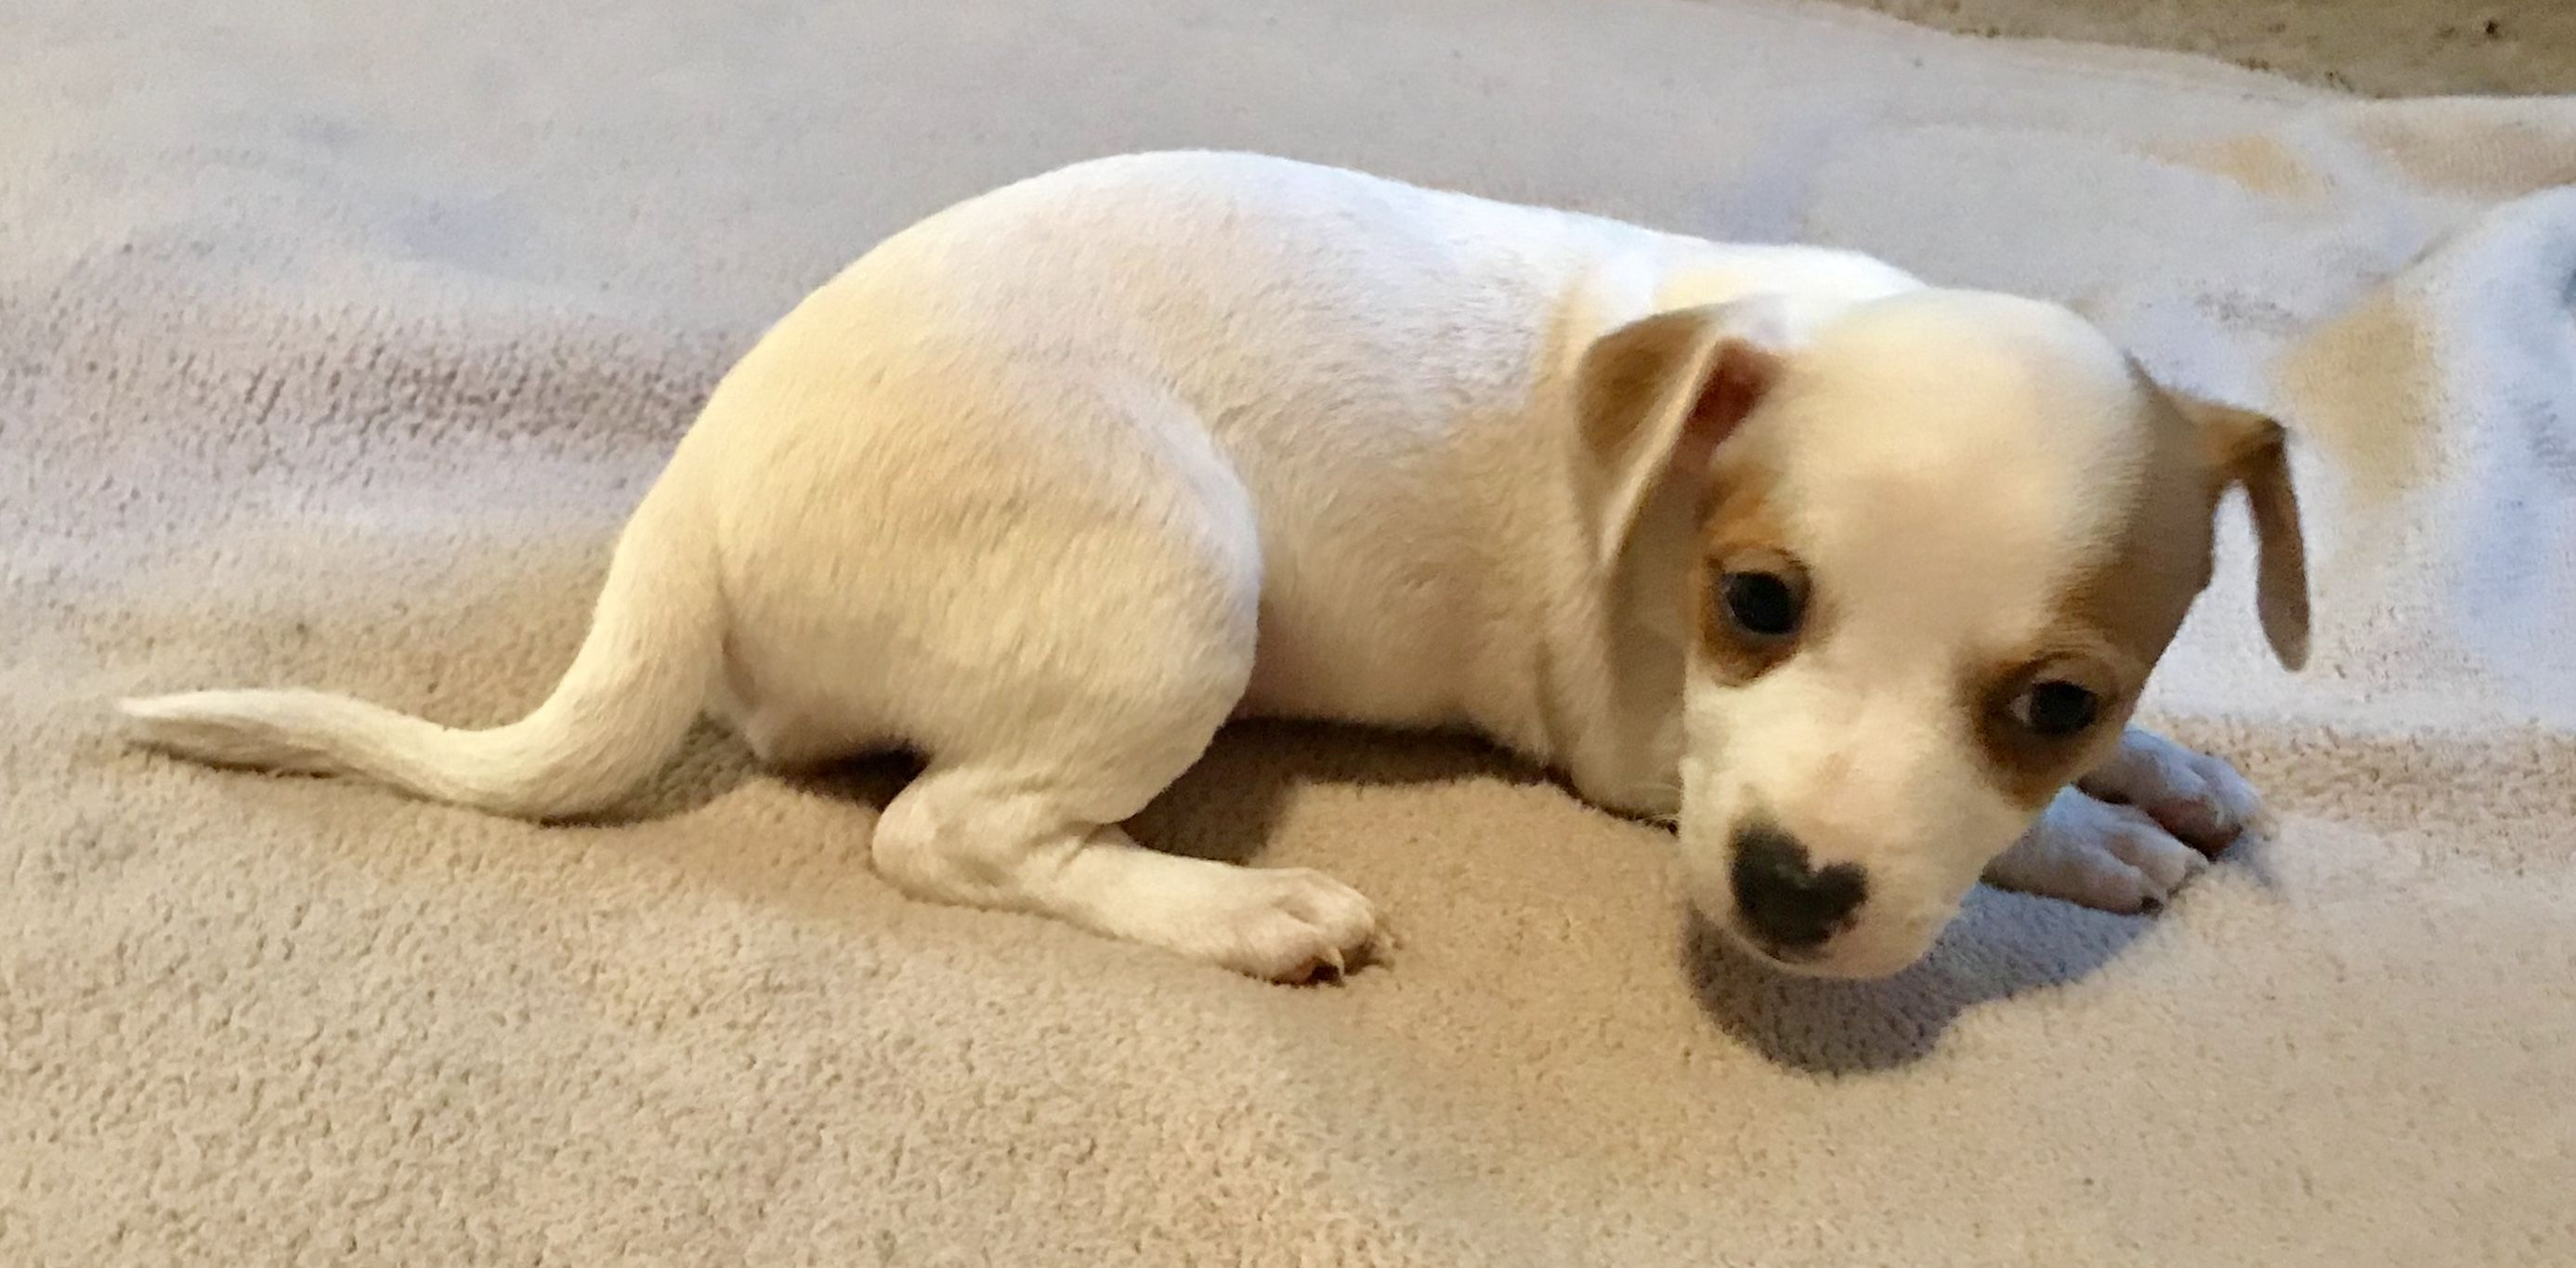 Jack Russell Puppies image 1